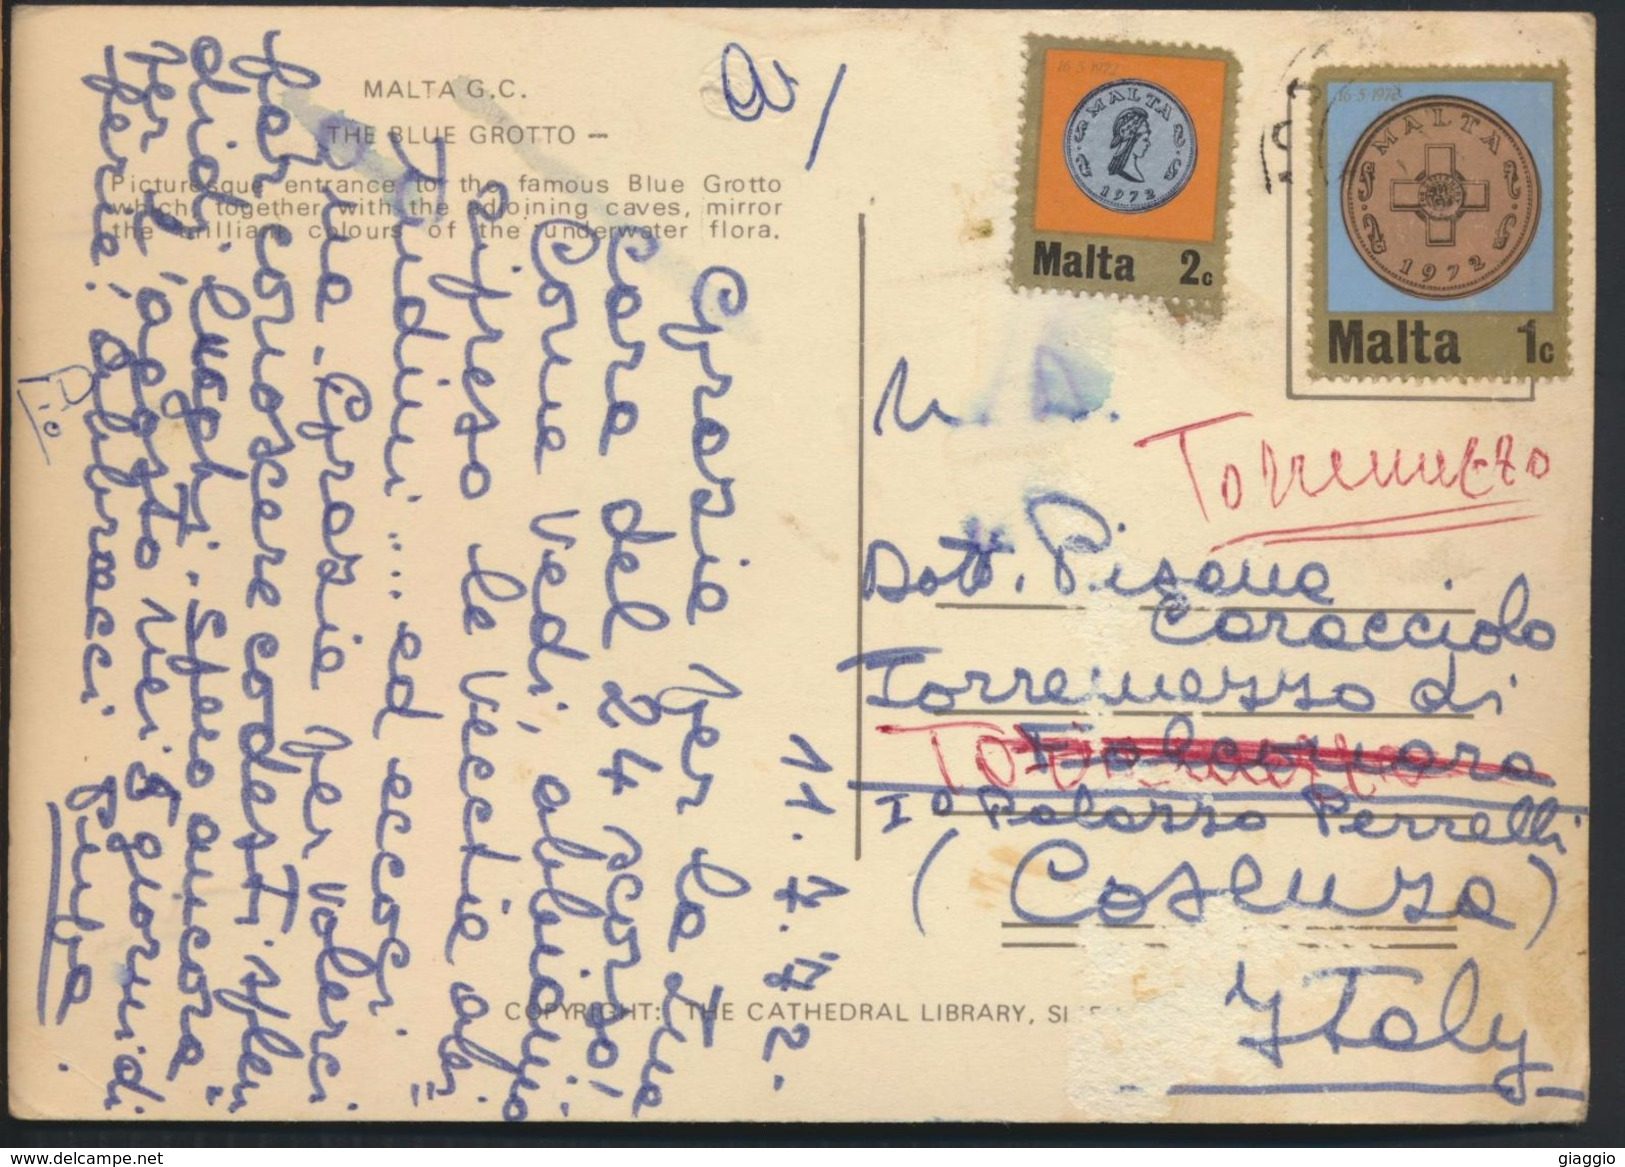 °°° 6526 - MALTA - THE BLUE GROTTO - 1972 With Stamps °°° - Malta